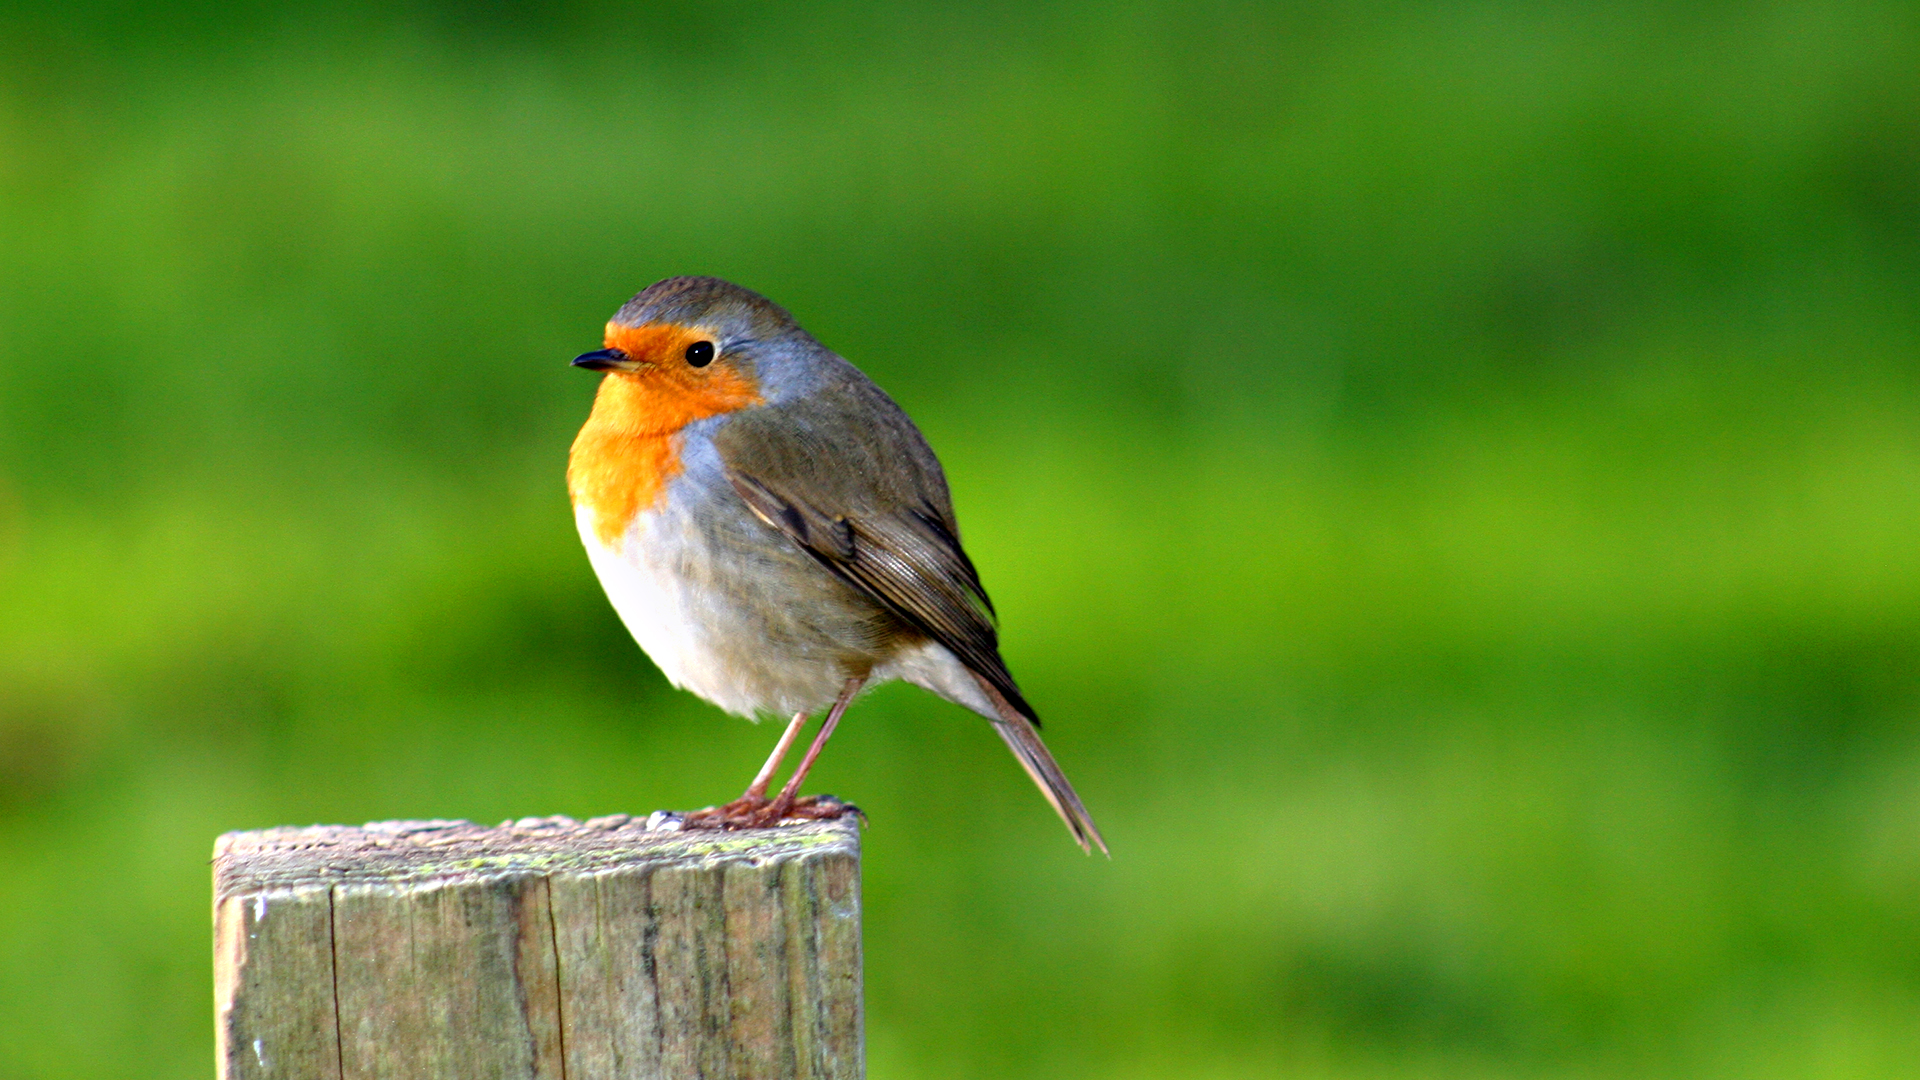 wallpapers birds desktop wallpaper animals bird 1920x1080 1920x1080